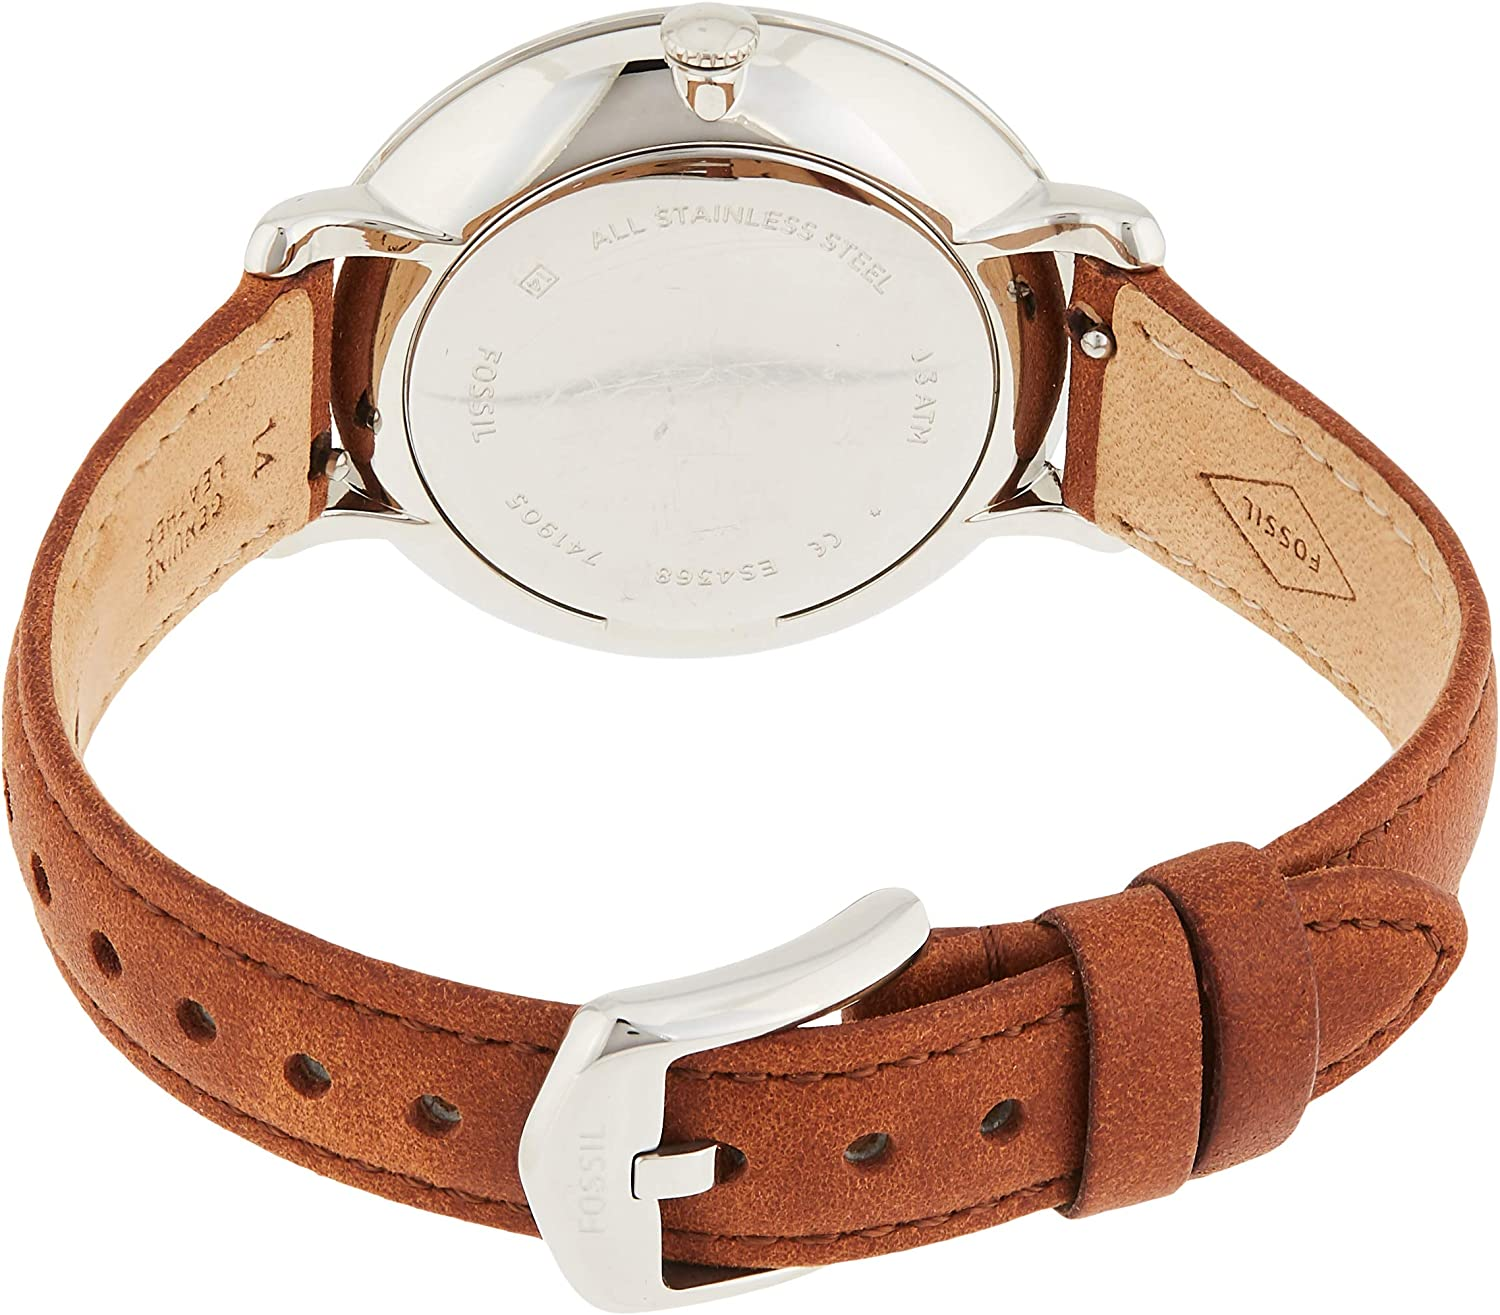 Fossil Women Jacqueline Stainless Steel and Leather Casual Quartz Watch Silver, Brown